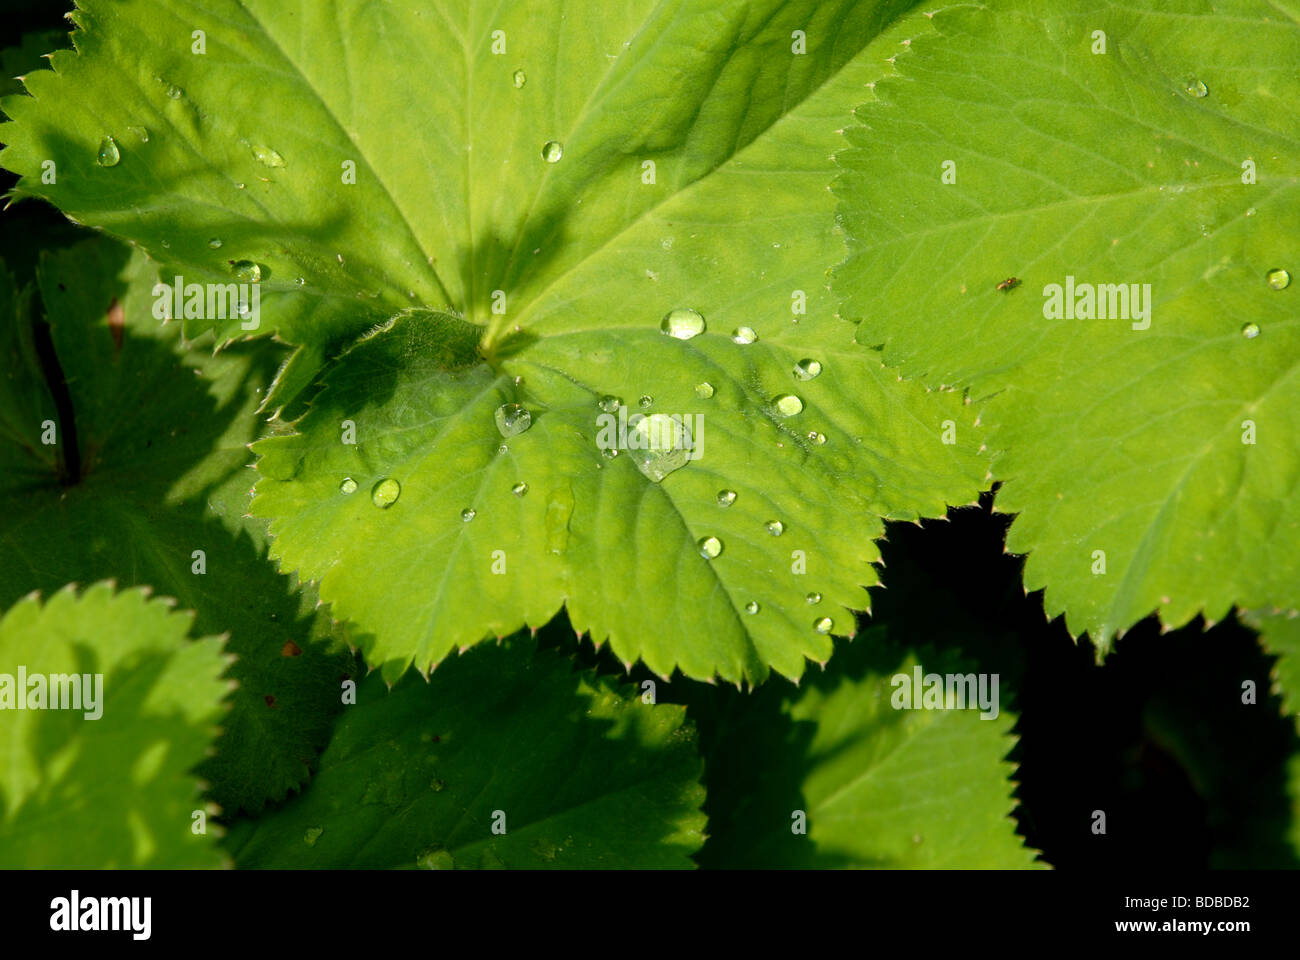 raindrops on some leaves of a garden Ladys Mantle or Alchemilla Mollis - Stock Image